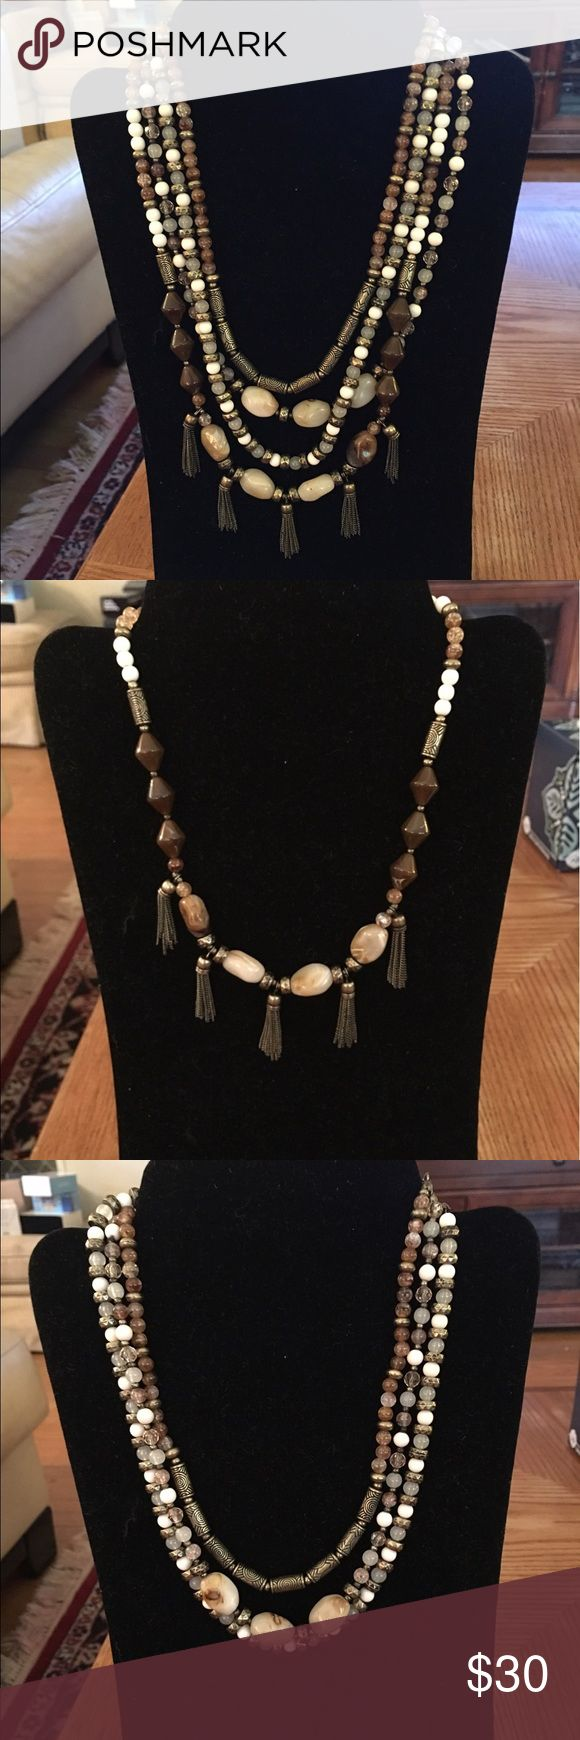 NIB. Premier Designs New Neutrals Necklace $30 NIB. Premier Designs New Neutrals Necklace $30. Price is Firm. No Trades Please. I do Bundle. I ❤️this necklace too. It was a Best Seller for me as well! Pairs well with the Jane Earrings I have listed as well. Premier Designs Jewelry Necklaces